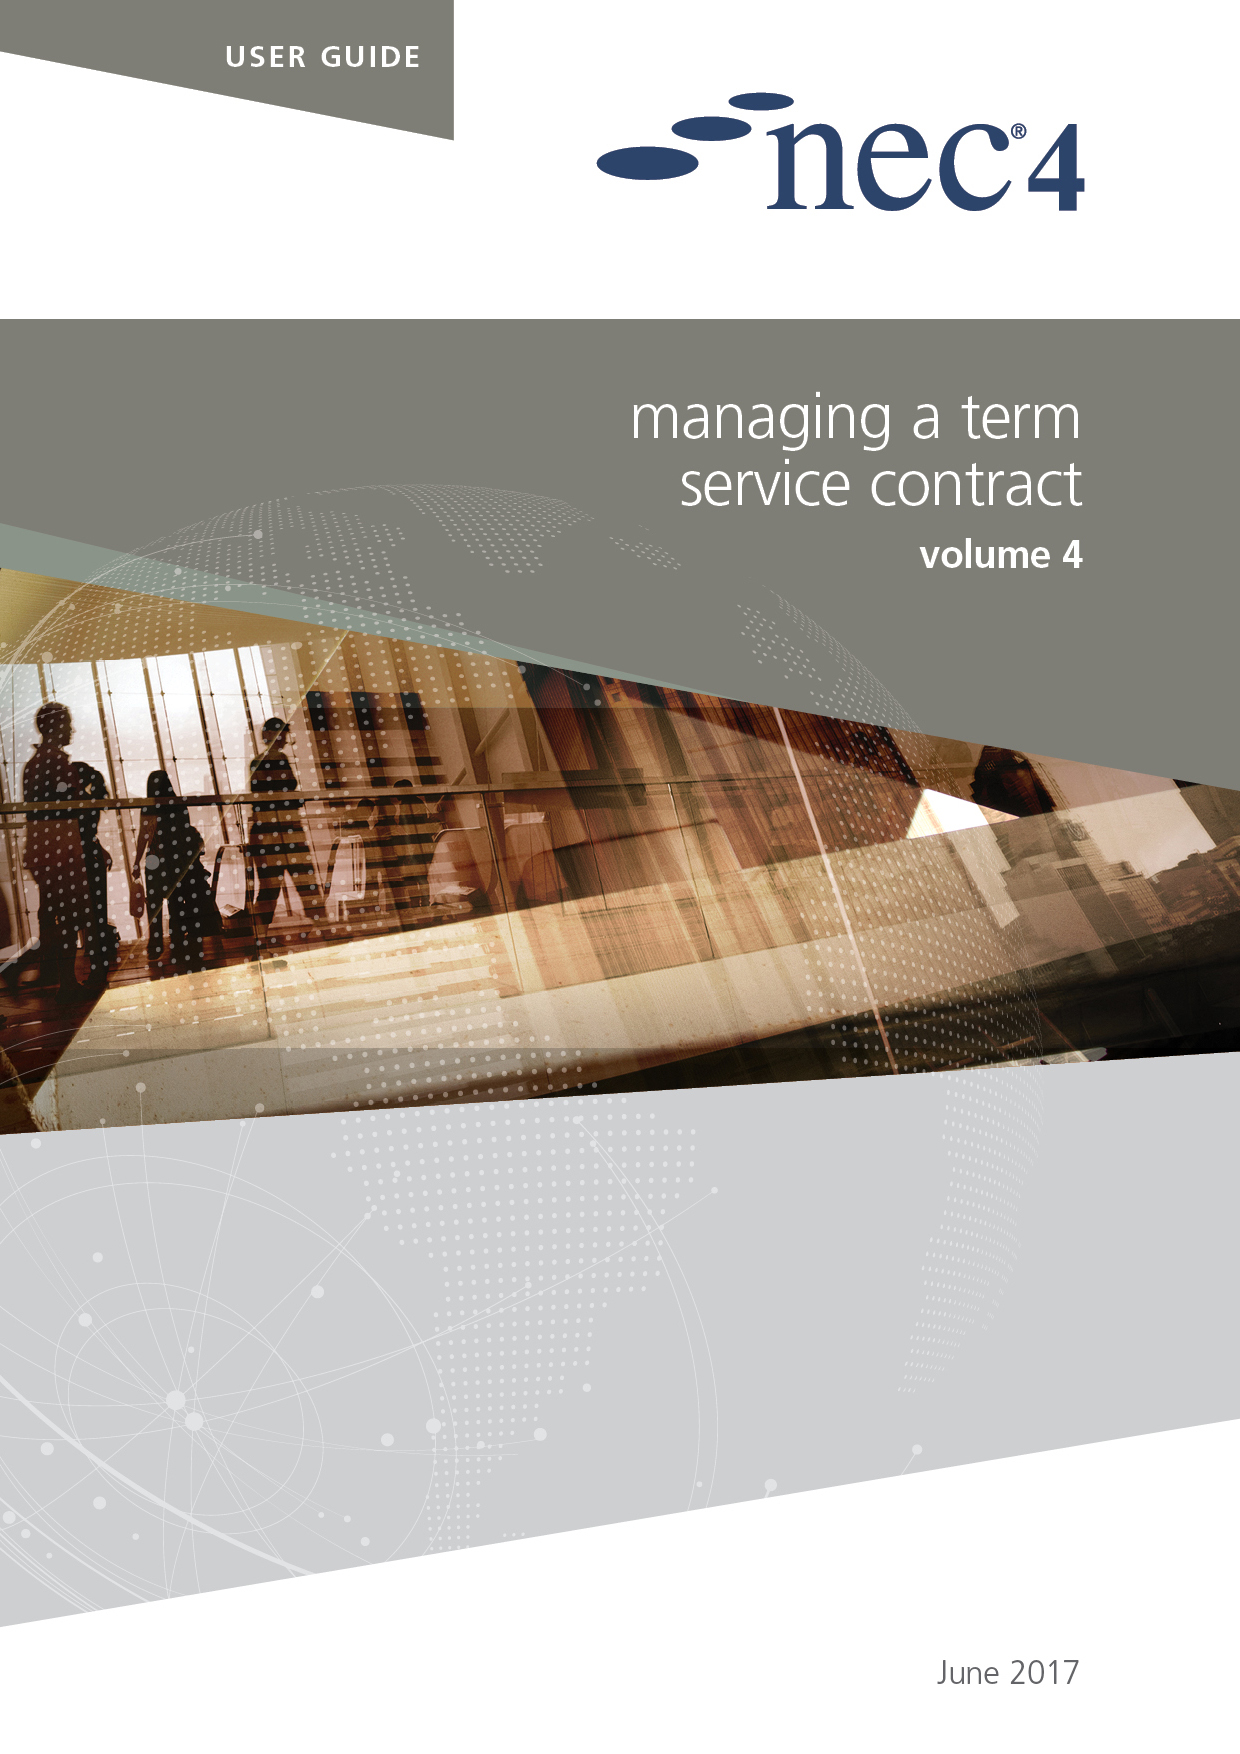 NEC4: Managing a Term Service Contract